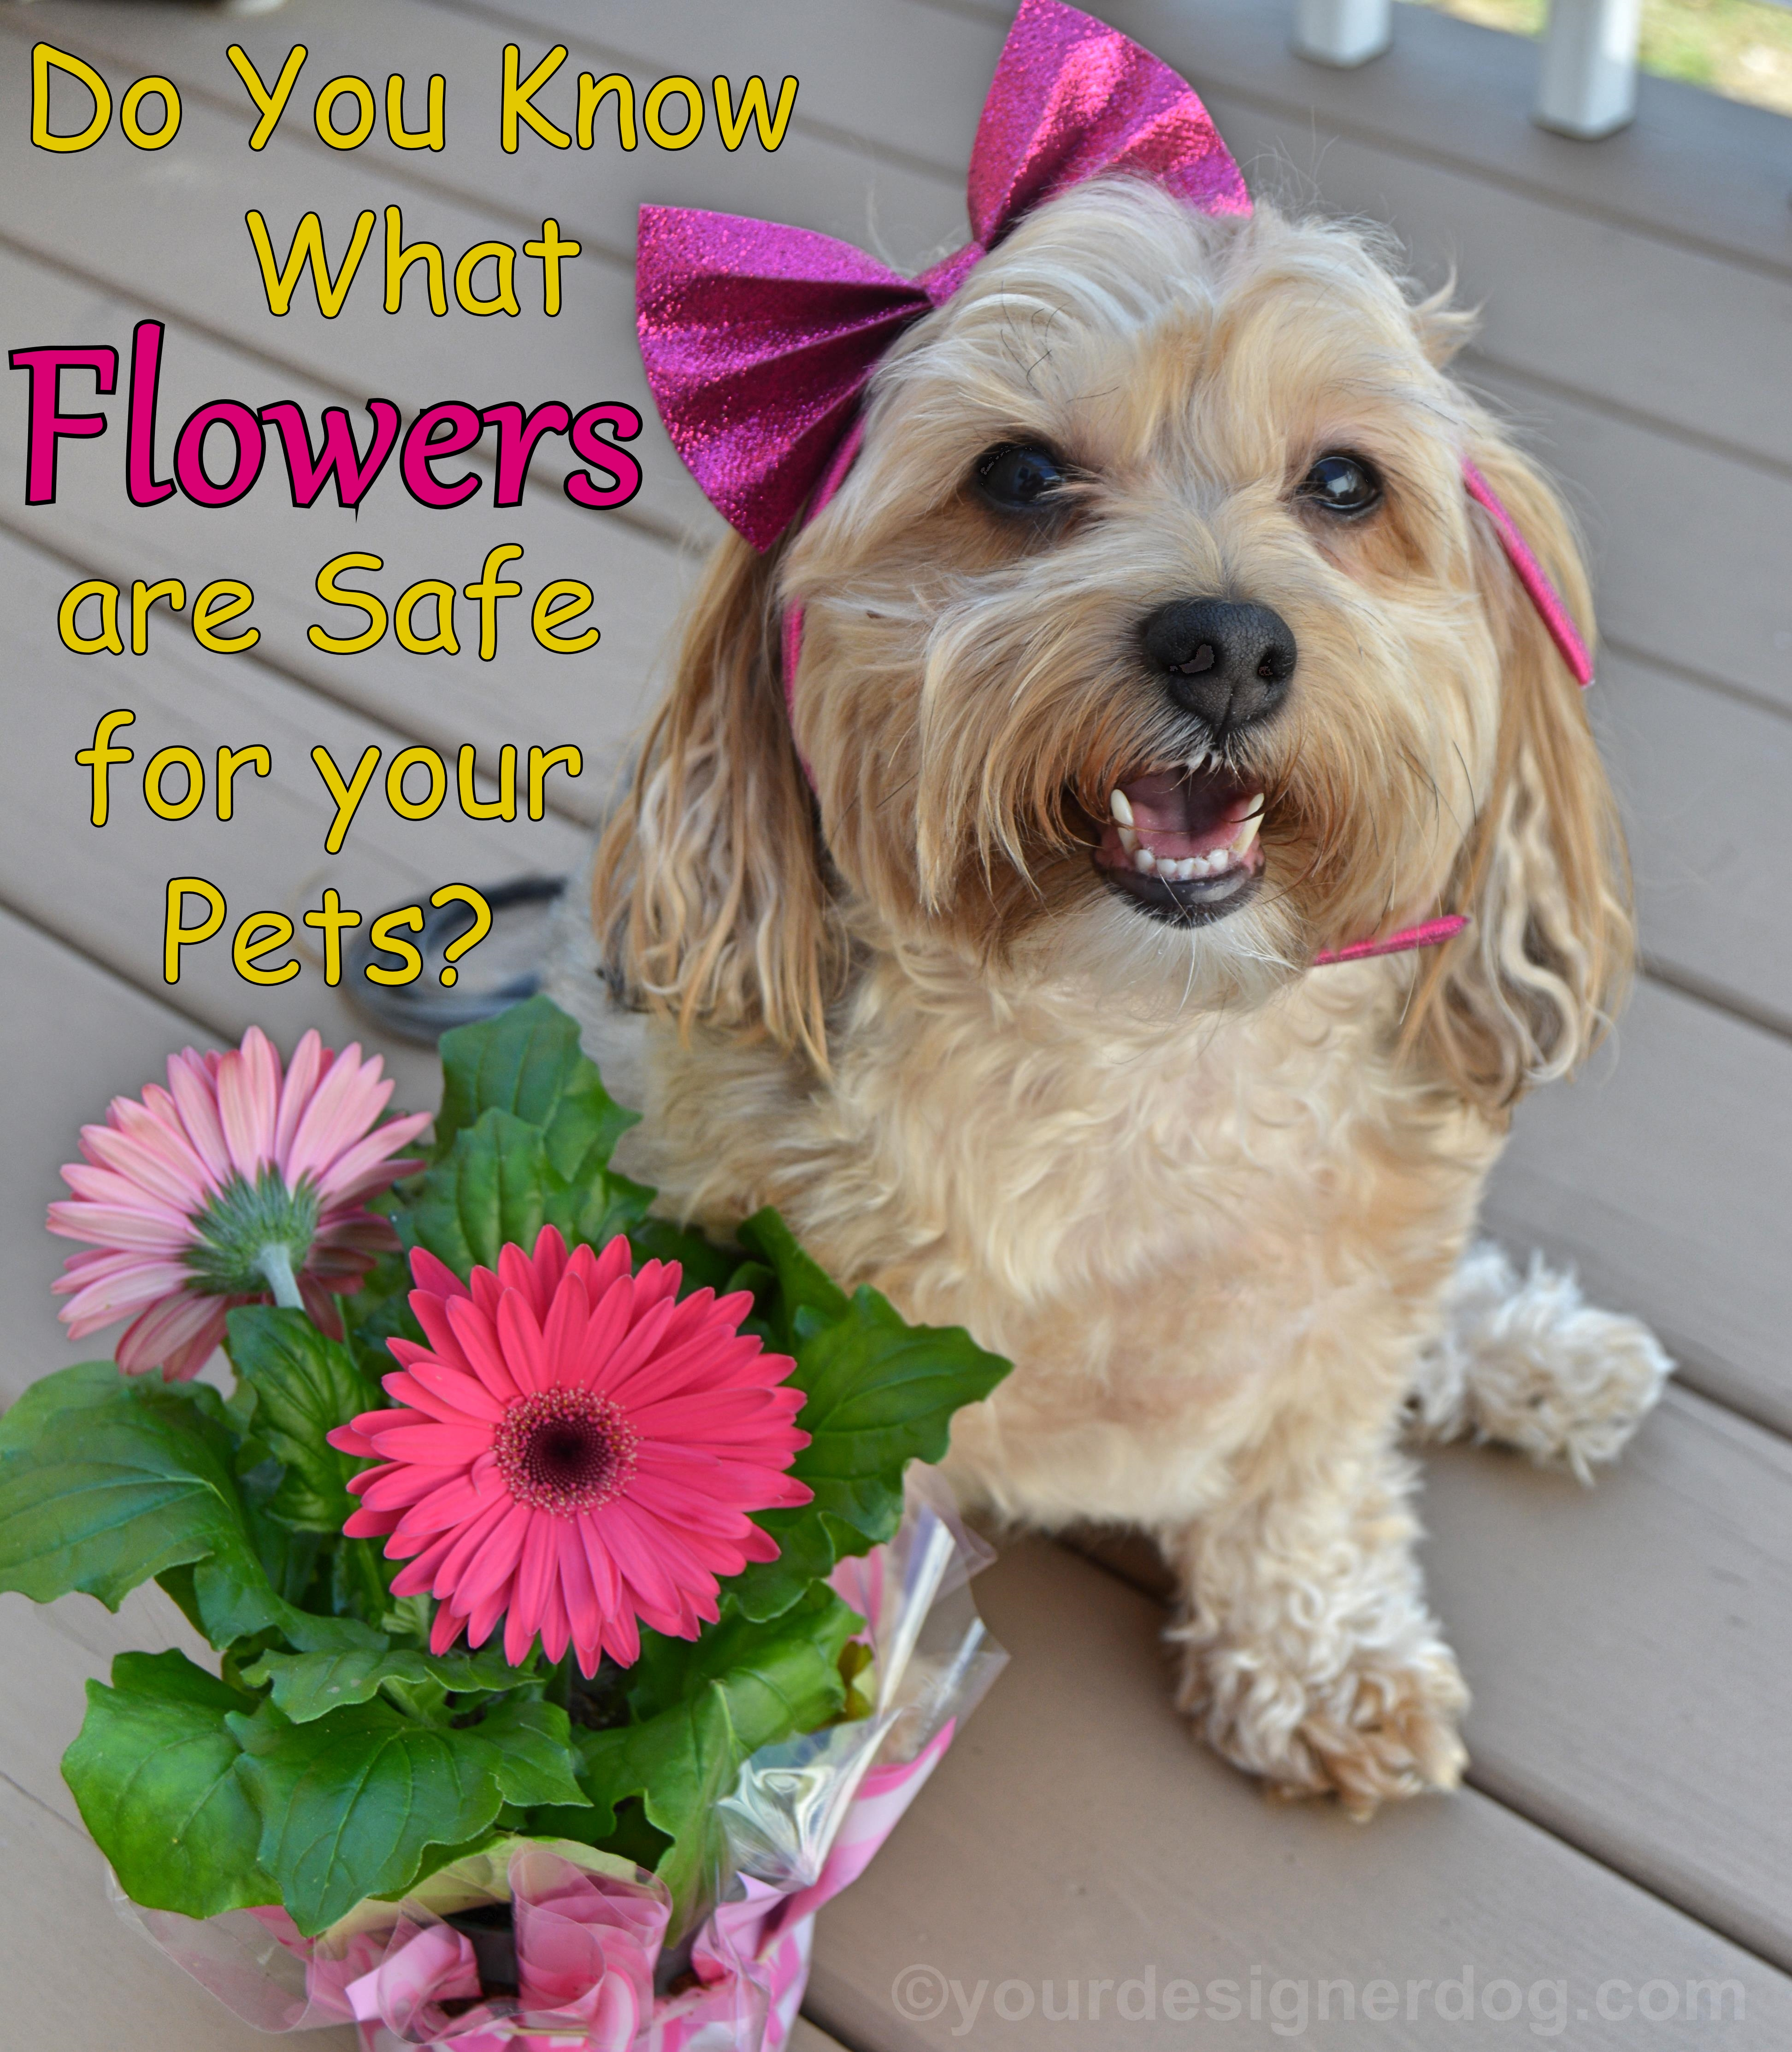 Which Flowers Are Safe For Your Pets?